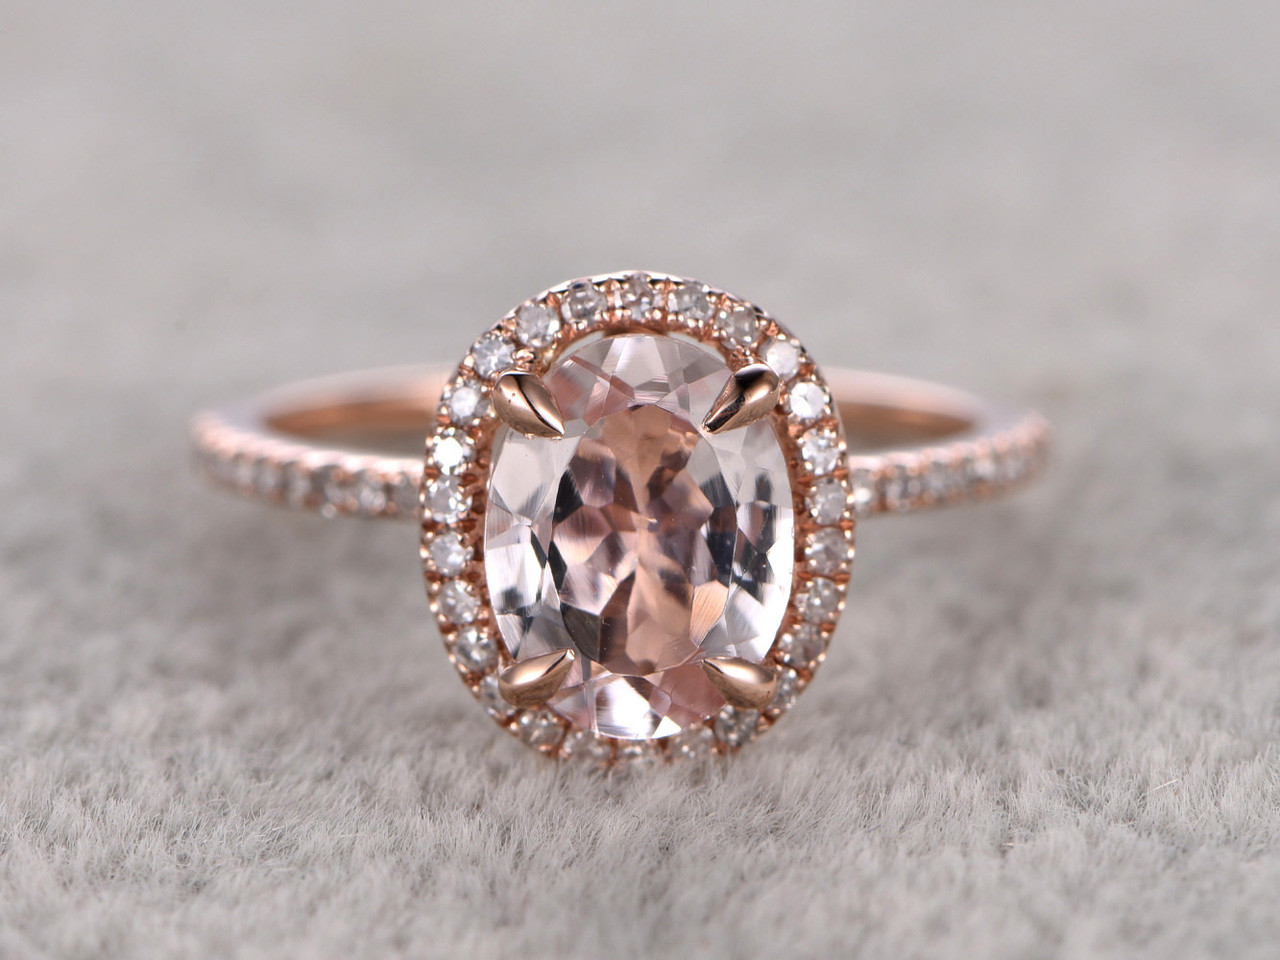 tw morganite and vian ring strawberry le vanilla peach chocolate diamond in gold